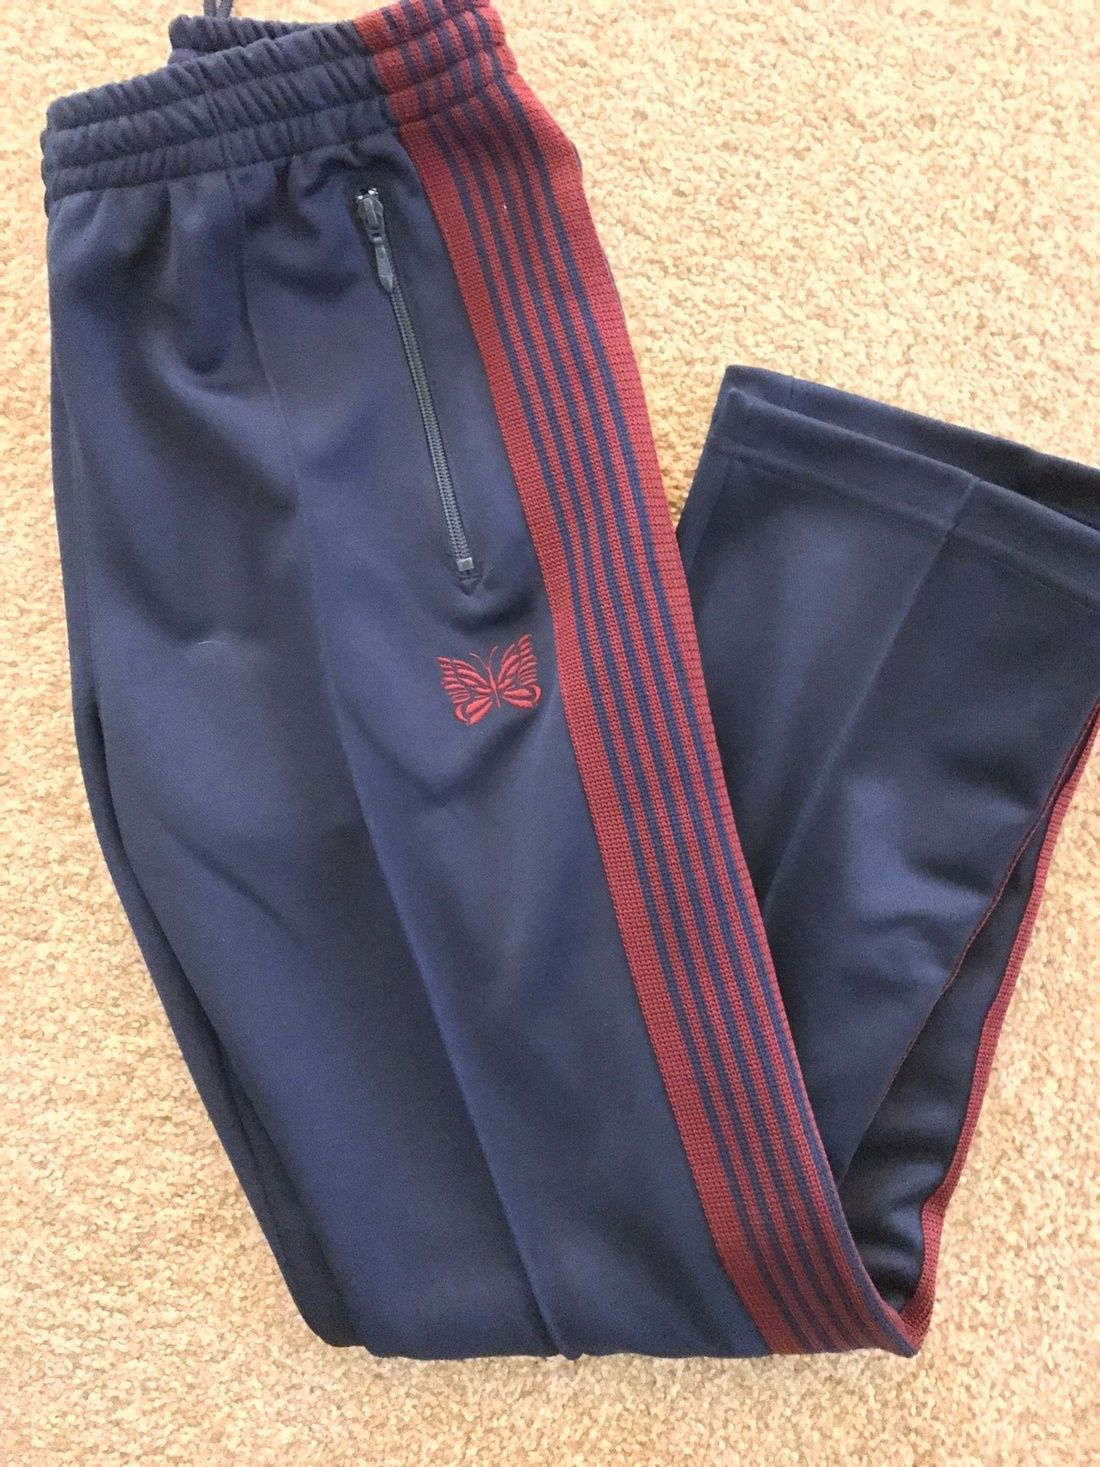 98192cbd Needles Needles Narrow Track Pants Sweatpants Navy Red Size Small Brand New  With Tags Size 29 $360 - Grailed